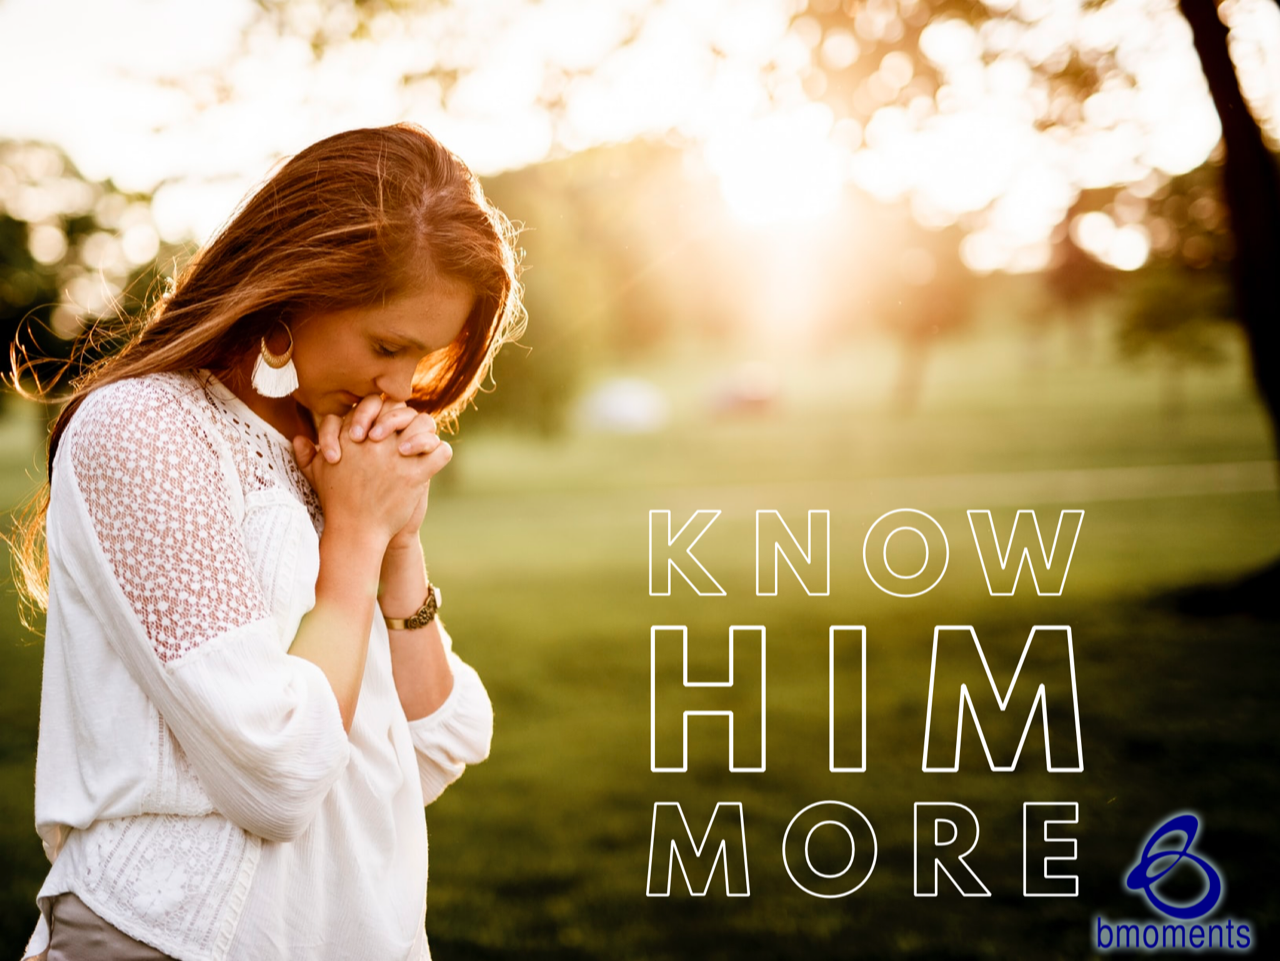 God Wants You to Know Him Even More